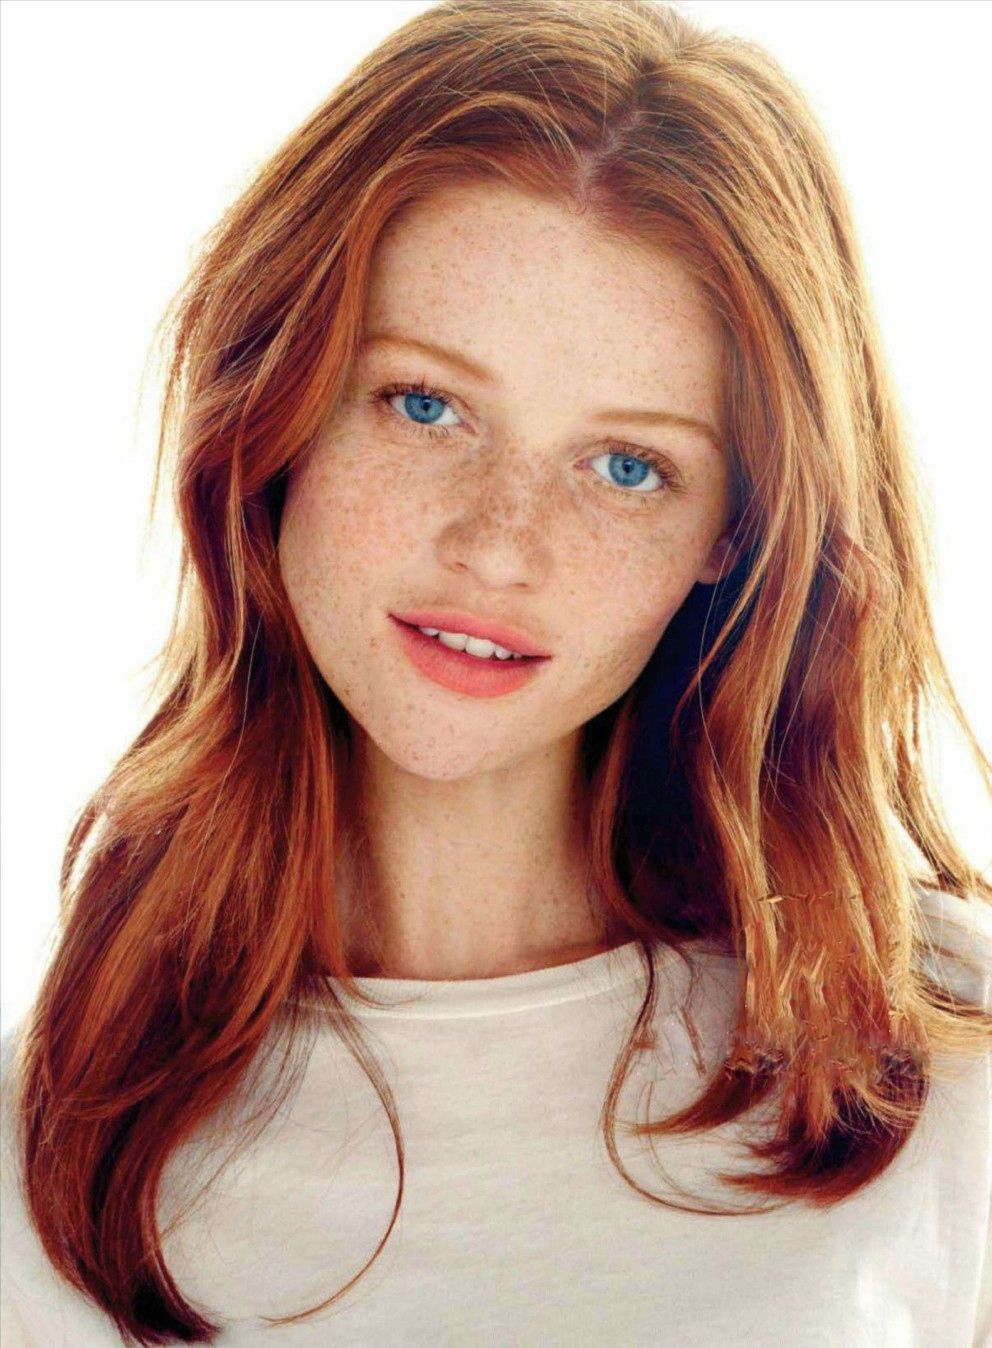 Redhead Freckles Blue Eyes Ginger Perfect Hair Rinse Diy Natural Red Hair Redheads